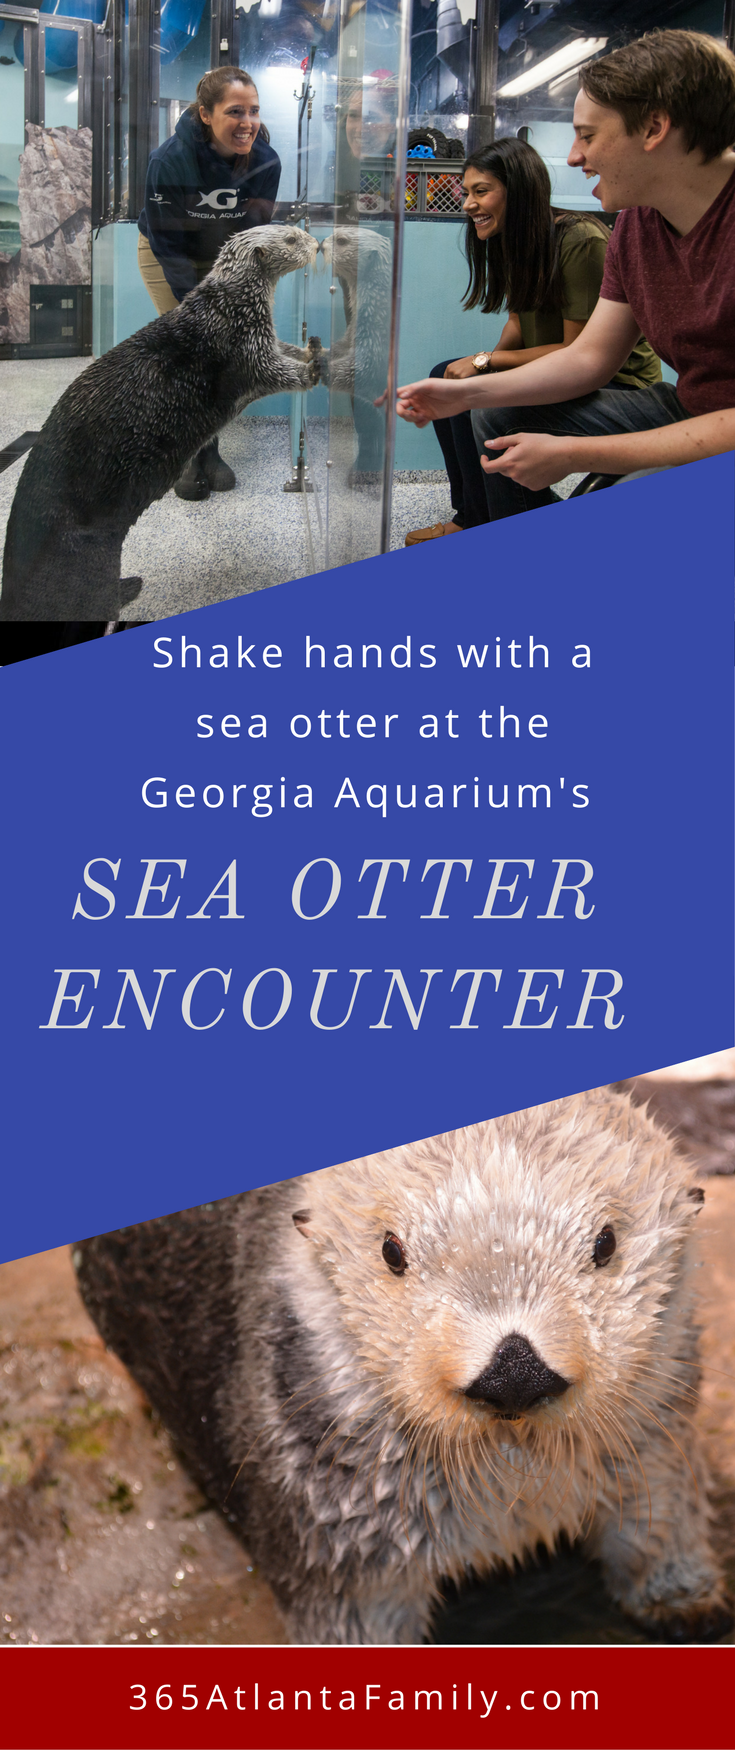 Georgia Aquarium's Sea Otter Encounter - shake hands with an otter